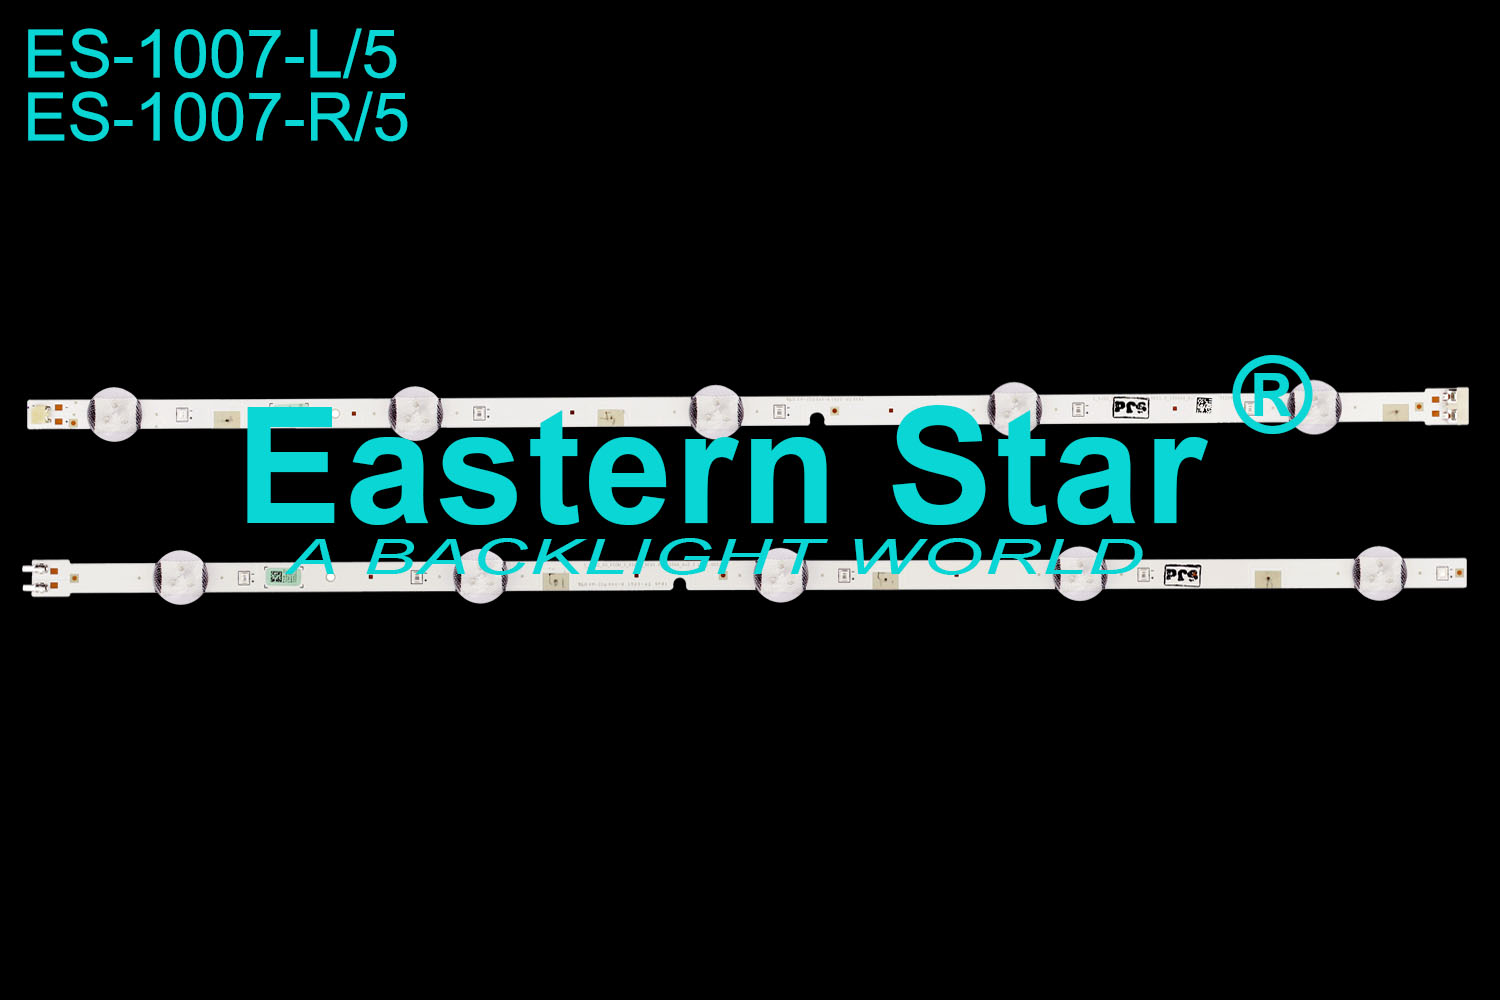 ES-1007 LED TV Backlight 49'' S_5J52_50_FCOM_5_RIGHT_REV1_170223_6x2.5   LM41-00121V_LM41-00145A LED STRIPS(8)